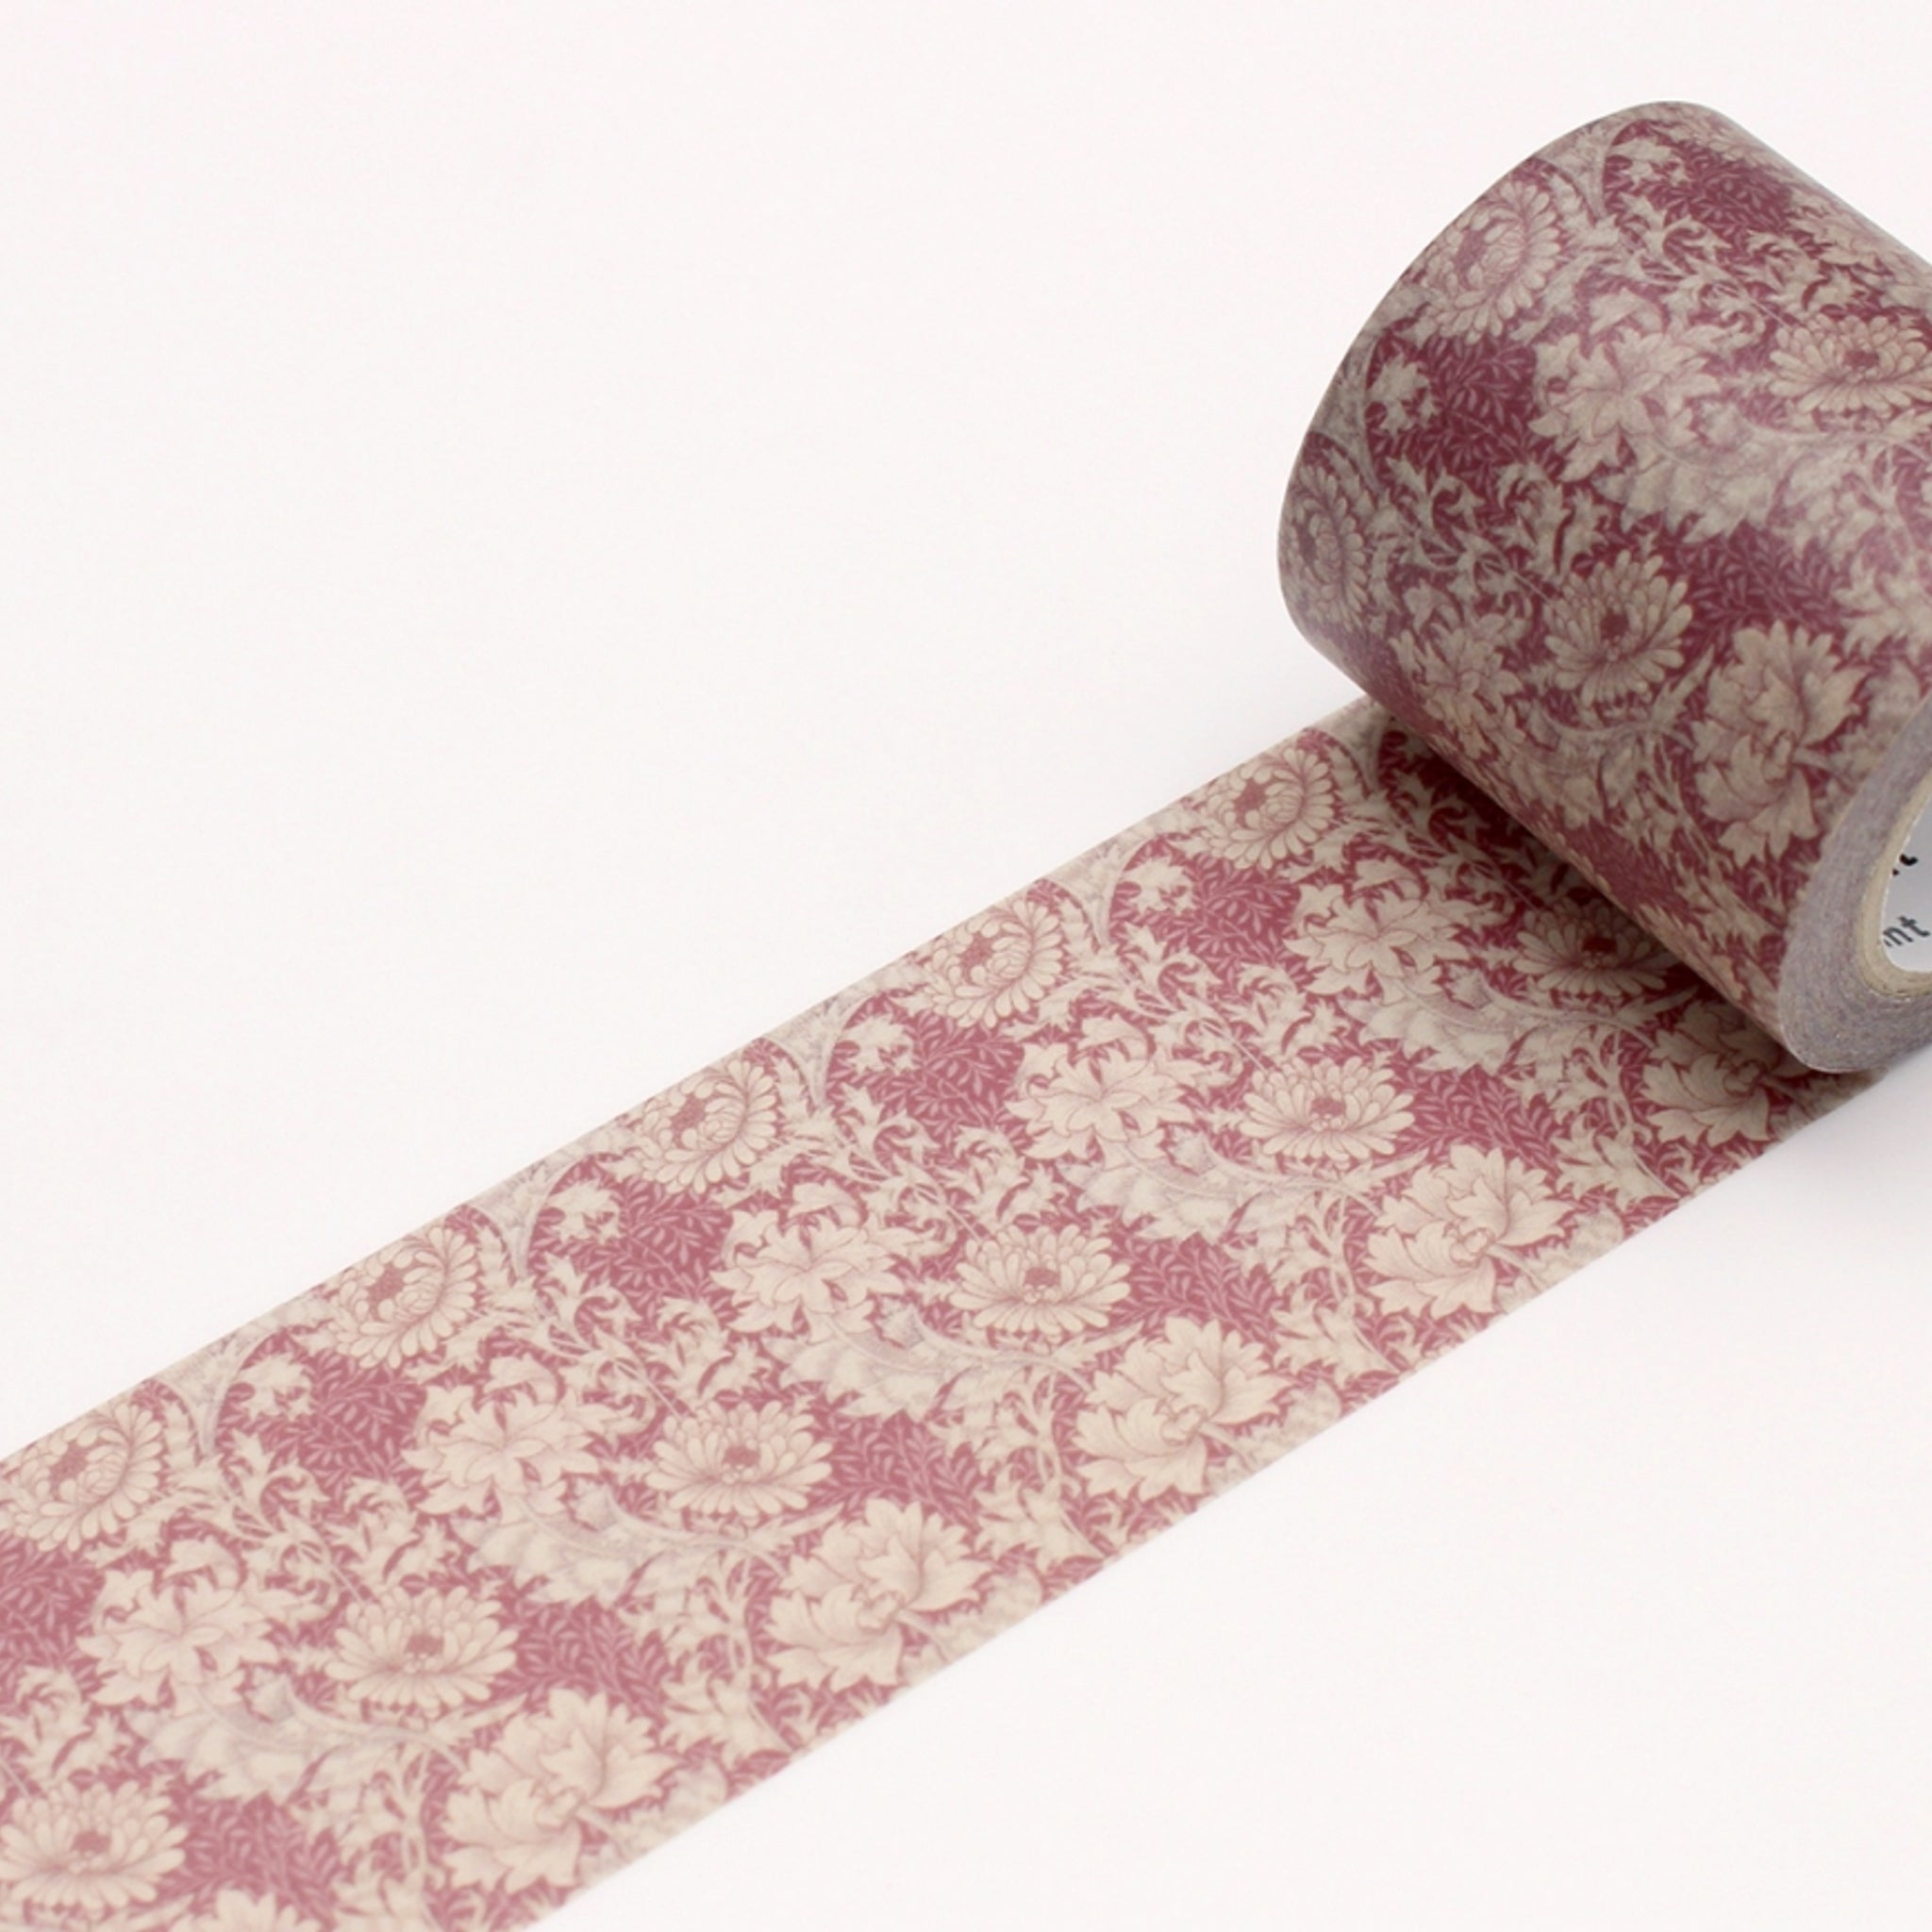 MT x William Morris Washi Tape Chrysanthemum